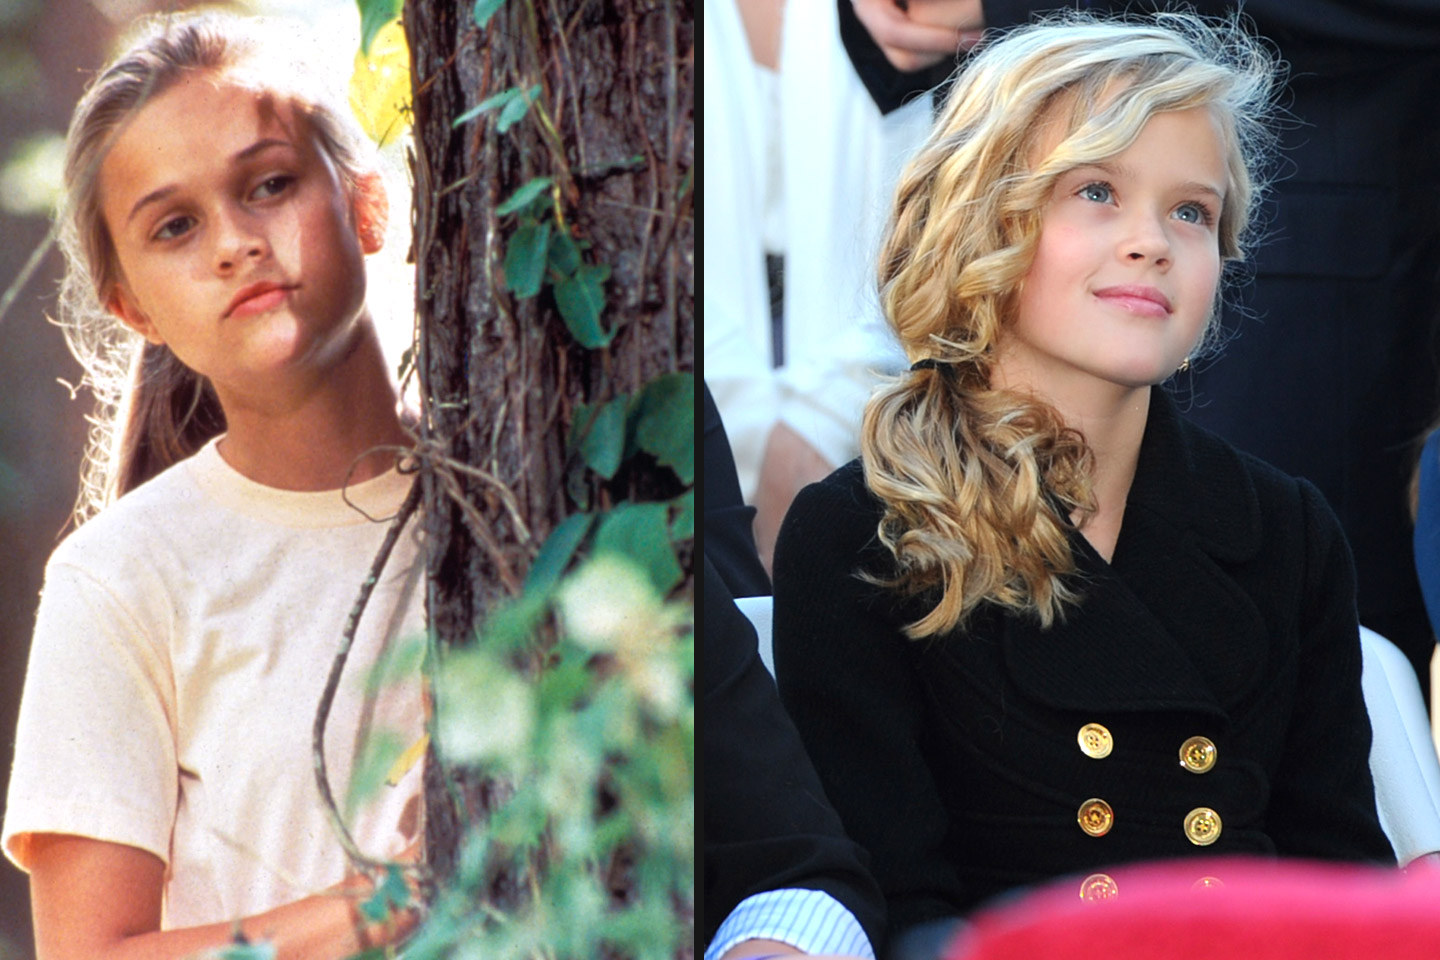 5550e84c1aaec7043ea467e2_celebrity-mom-lookalikes-reese-witherspoon-ava-phillippe-01